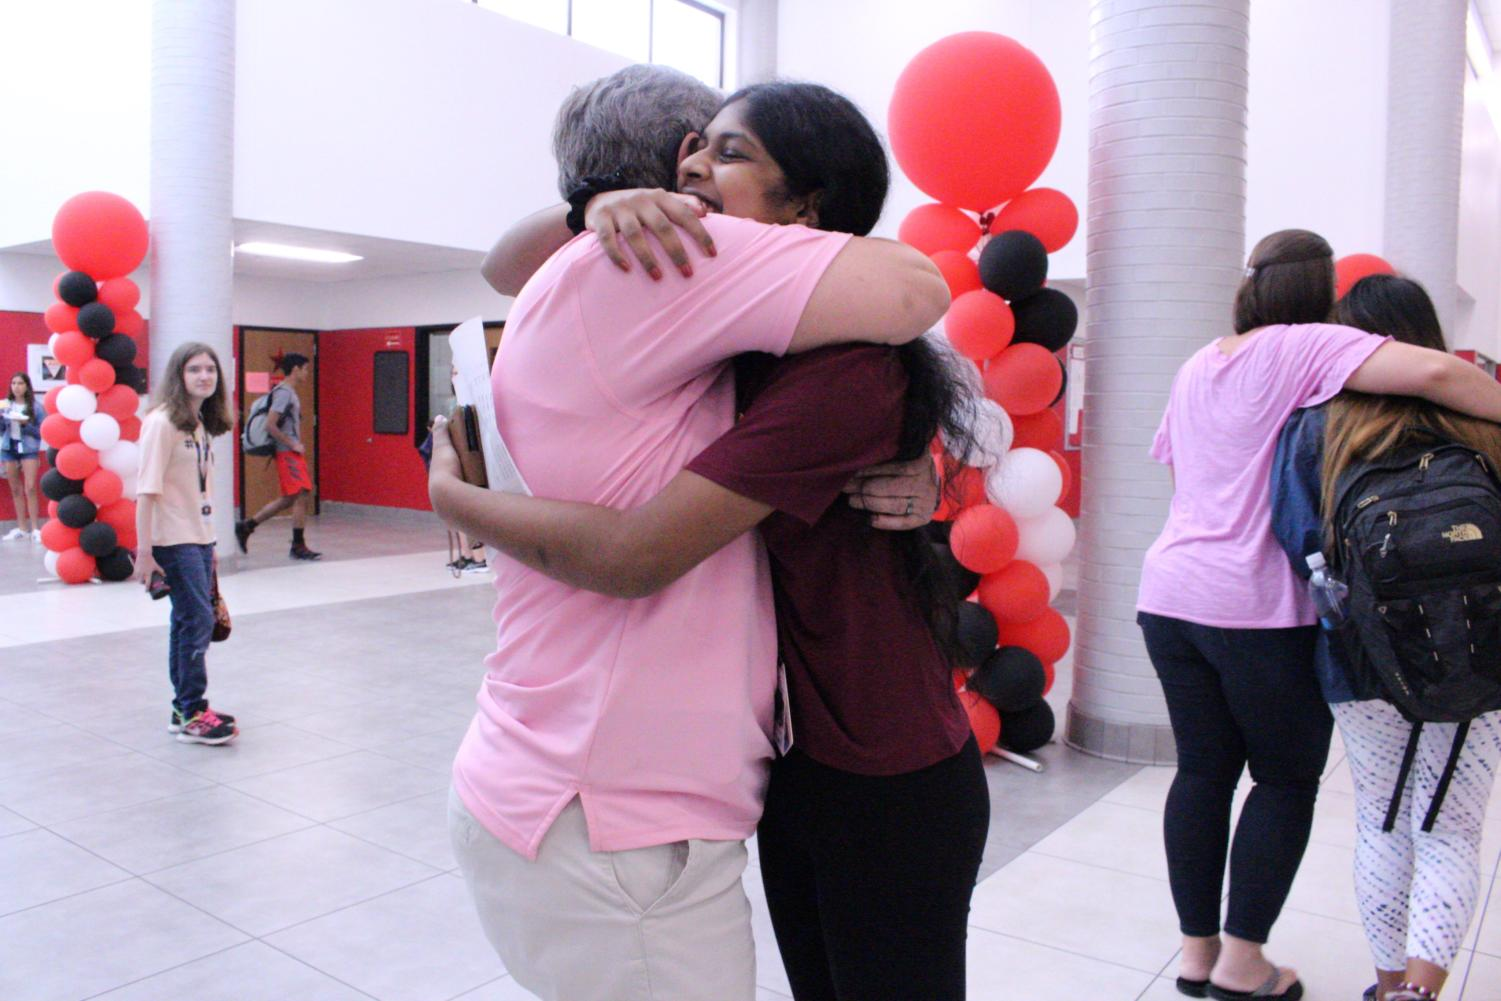 Coppell High School Principal Laura Springer hugs CHS sophomore Megna Gopinath as a sign of welcoming to the new school year. Springer comes to CHS from Coppell Middle School East and is bringing several changes to the campus.